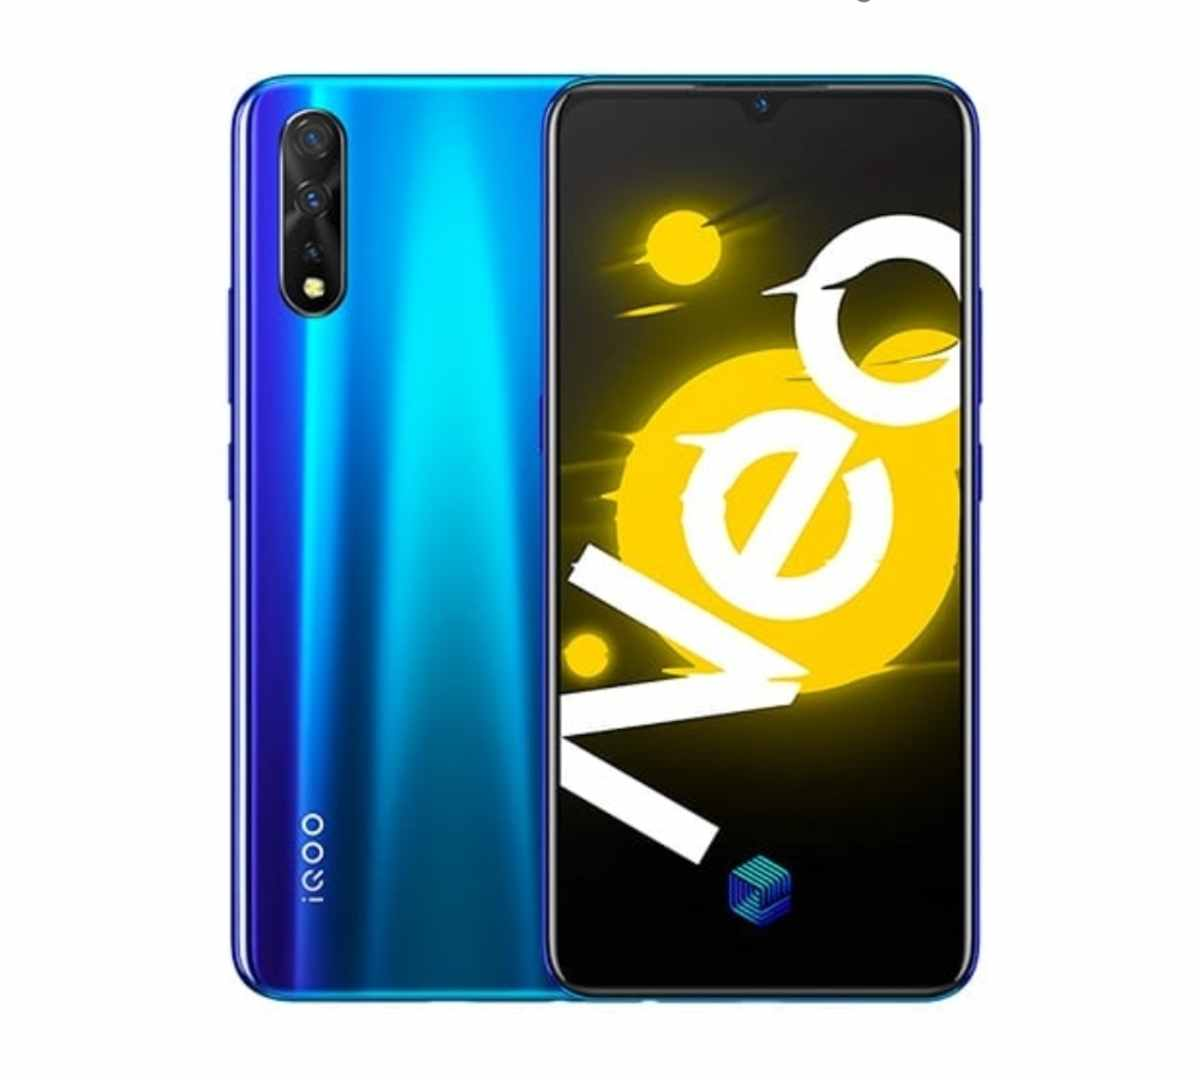 Vivo iQOO Neo 855 Racing, vivo iqoo neo 855 racing price in Nigeria, price of vivo iqoo neo 855 racing in Nigeria, iqoo neo 855 racing price in Nigeria, vivo iqoo neo 855 racing specs and price in Nigeria, vivo iqoo neo 855 racing specs, vivo iqoo neo 855 racing price, vivo iqoo 855 racing specifications, how much is vivo iqoo neo 855 racing, Nigerian price of vivo iqoo neo 855 racing, vivo iqoo neo 855 racing and price in Nigeria